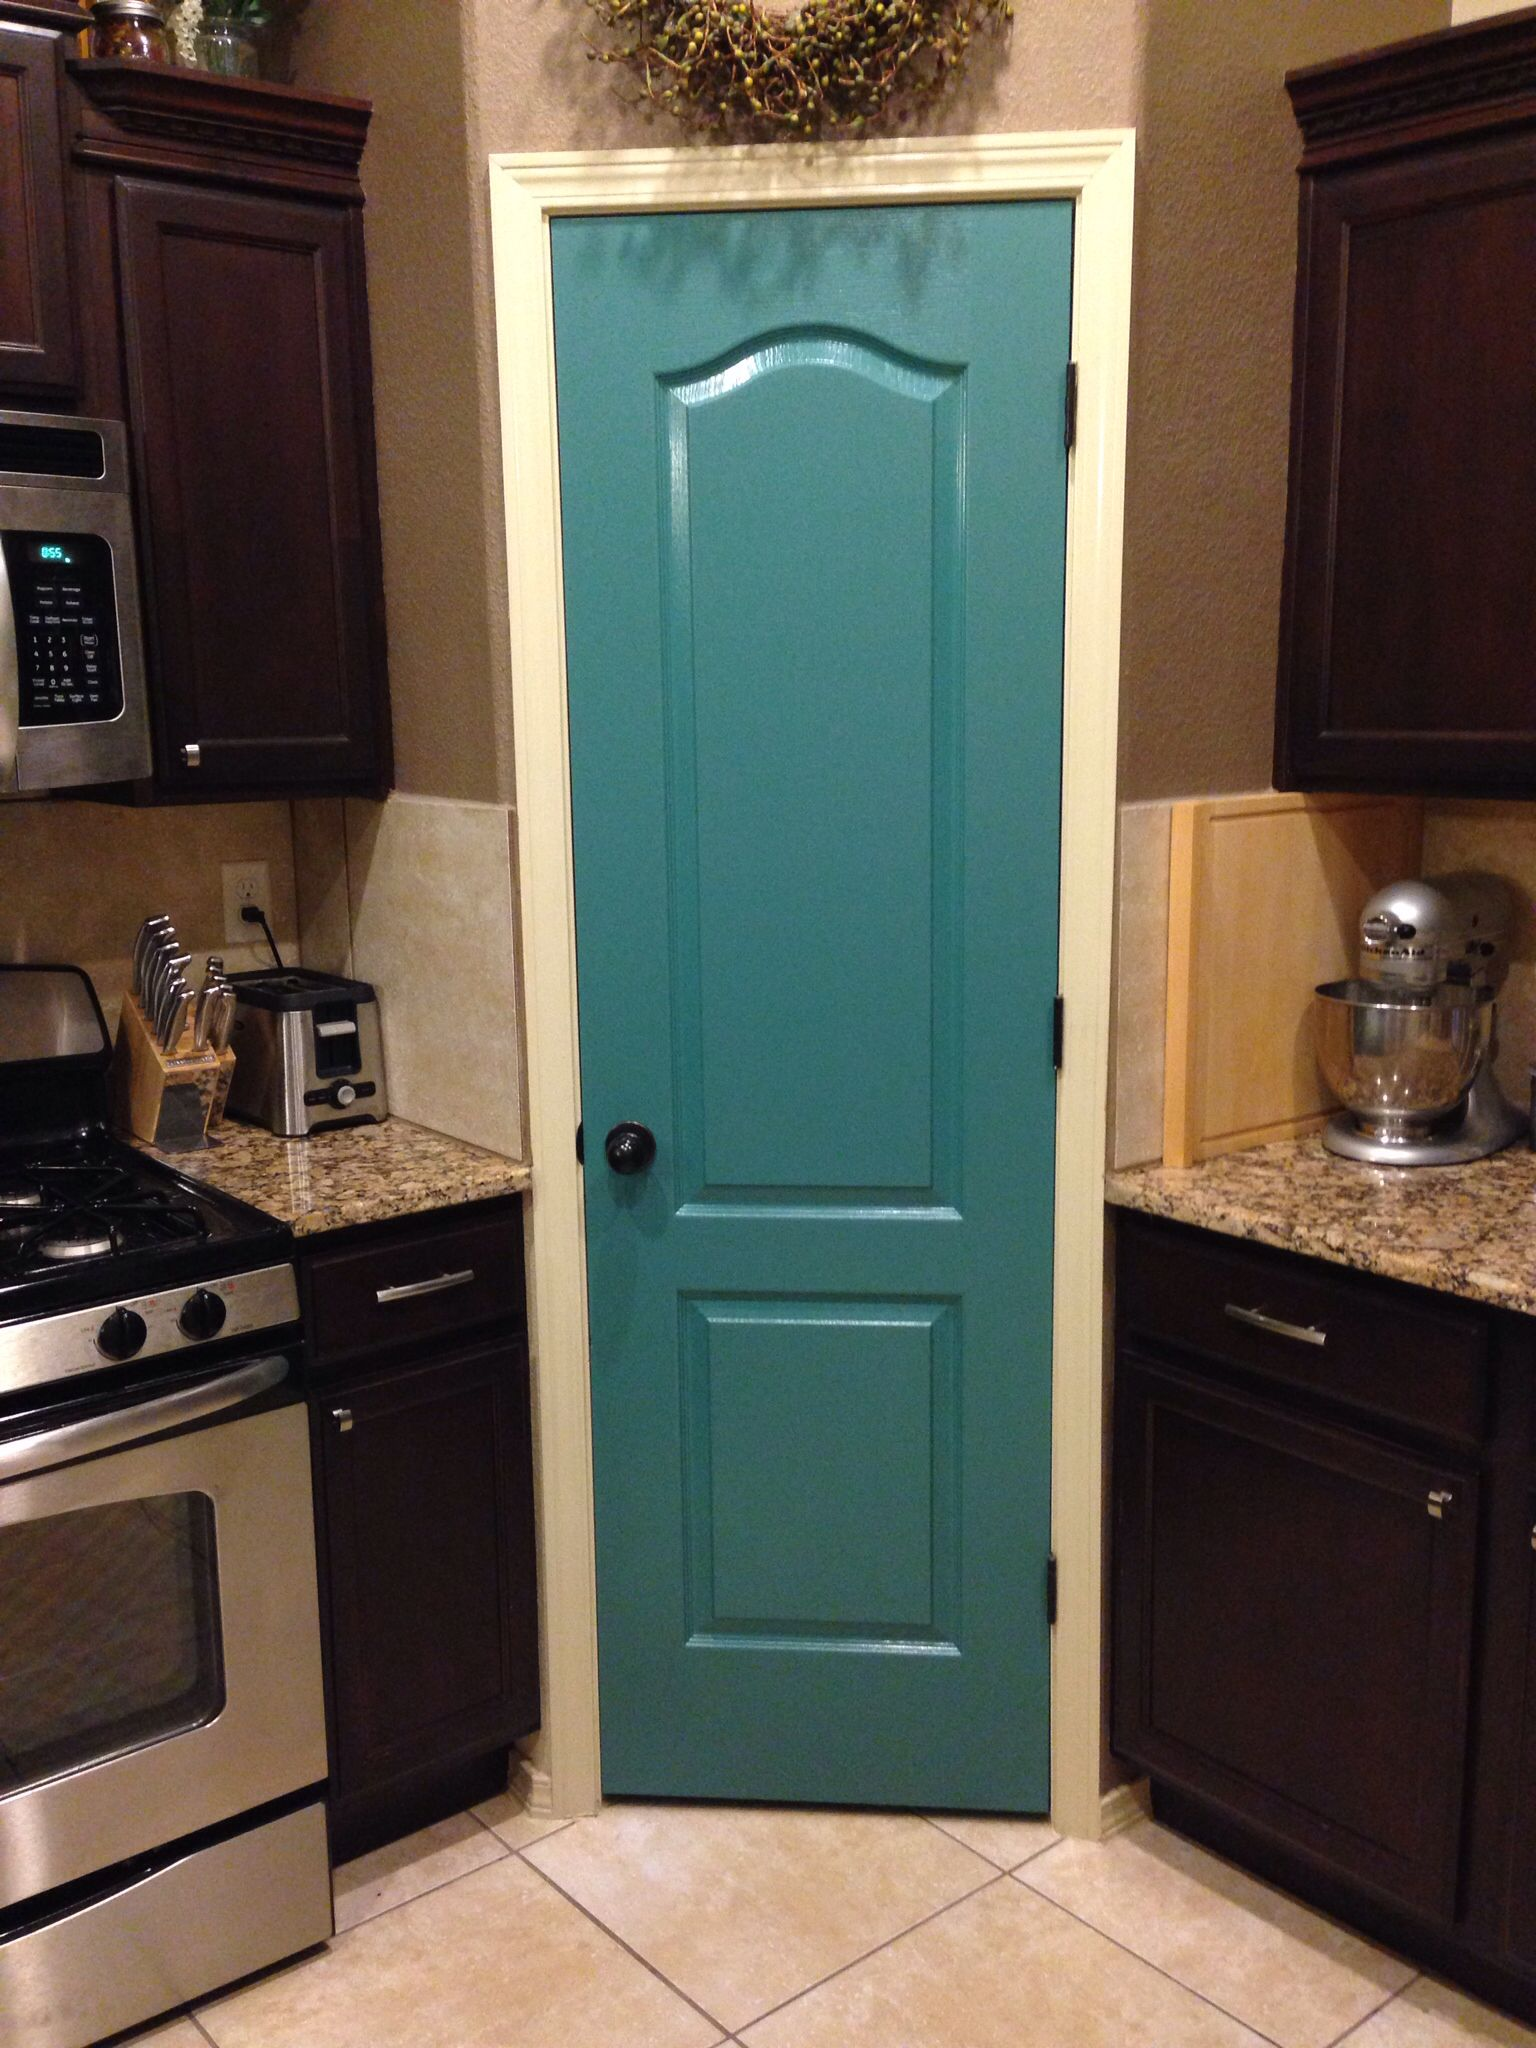 Teal Pantry Door. Such a great pop of color in the kitchen! Love it ...